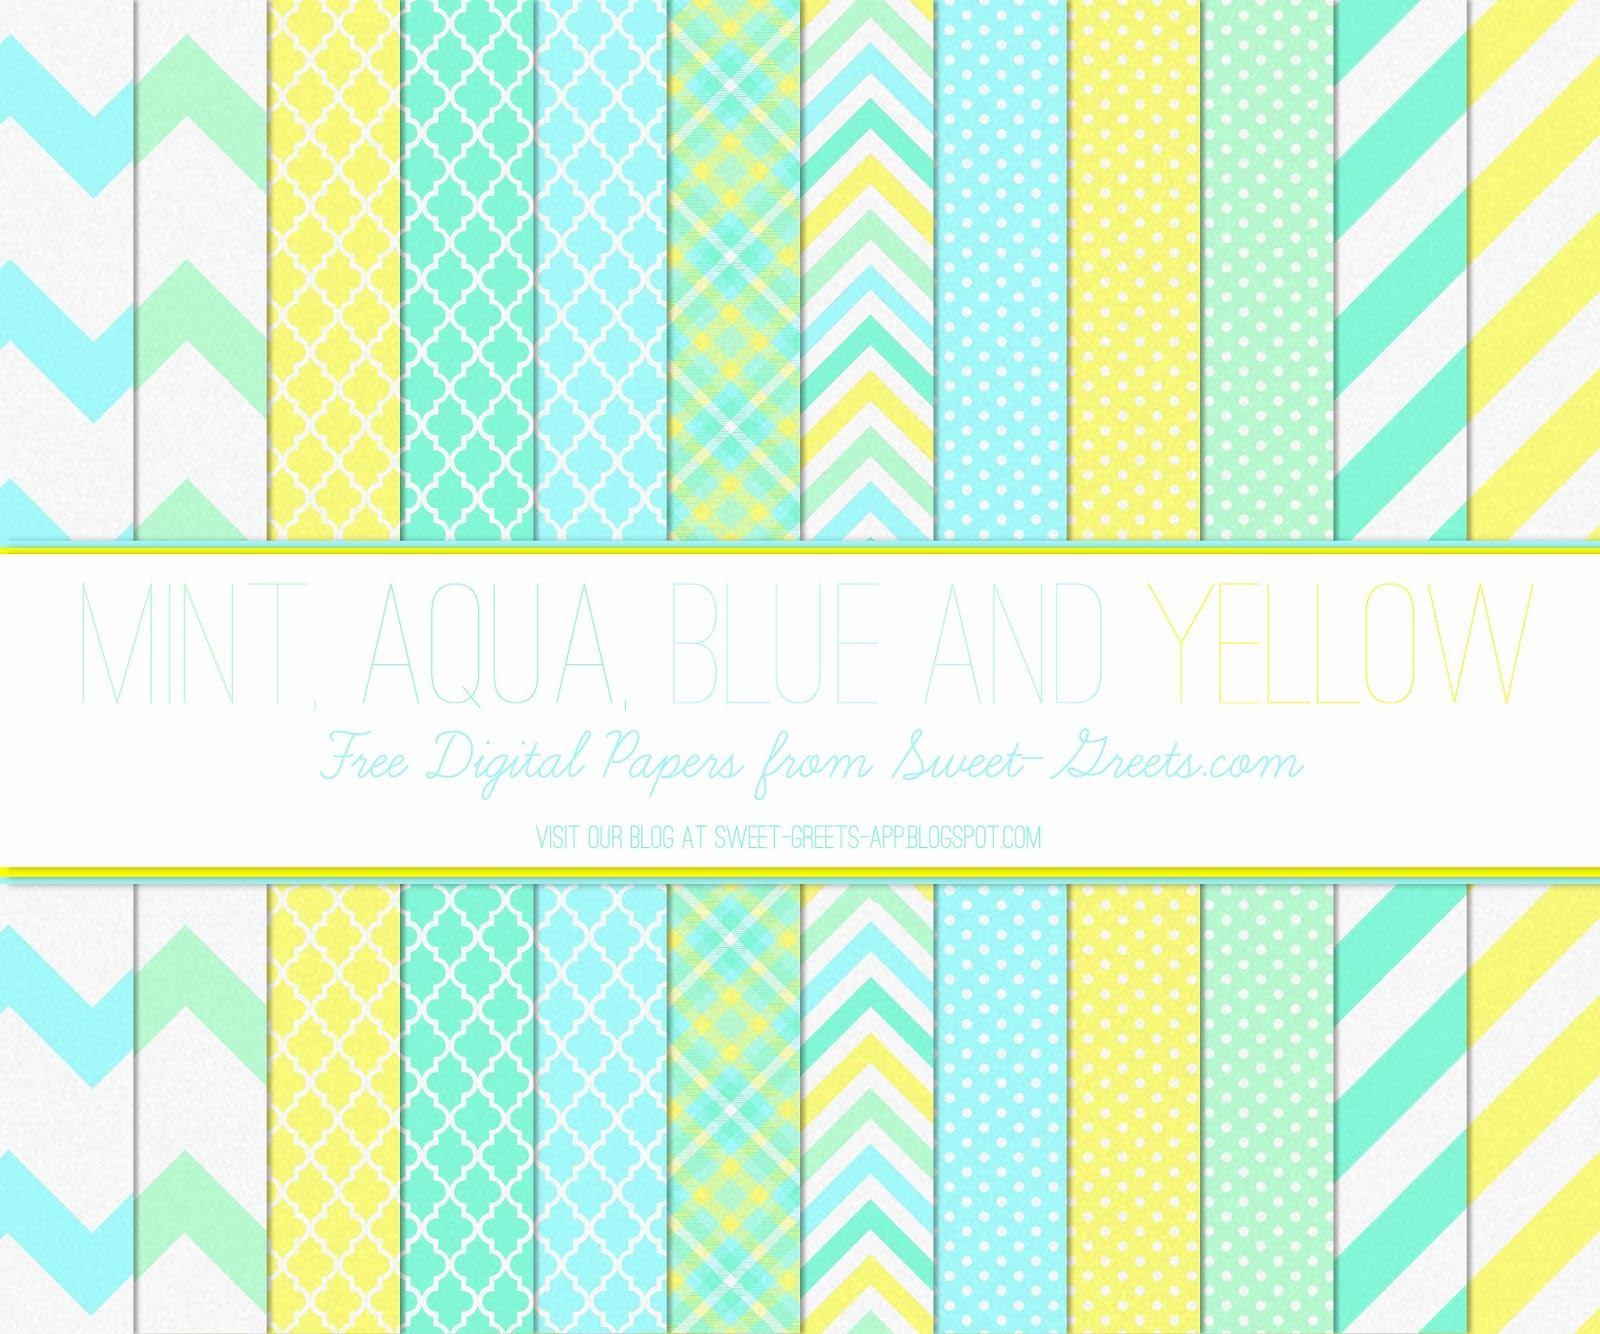 Free Digital Paper: Mint, Aqua, Blue and Yellow